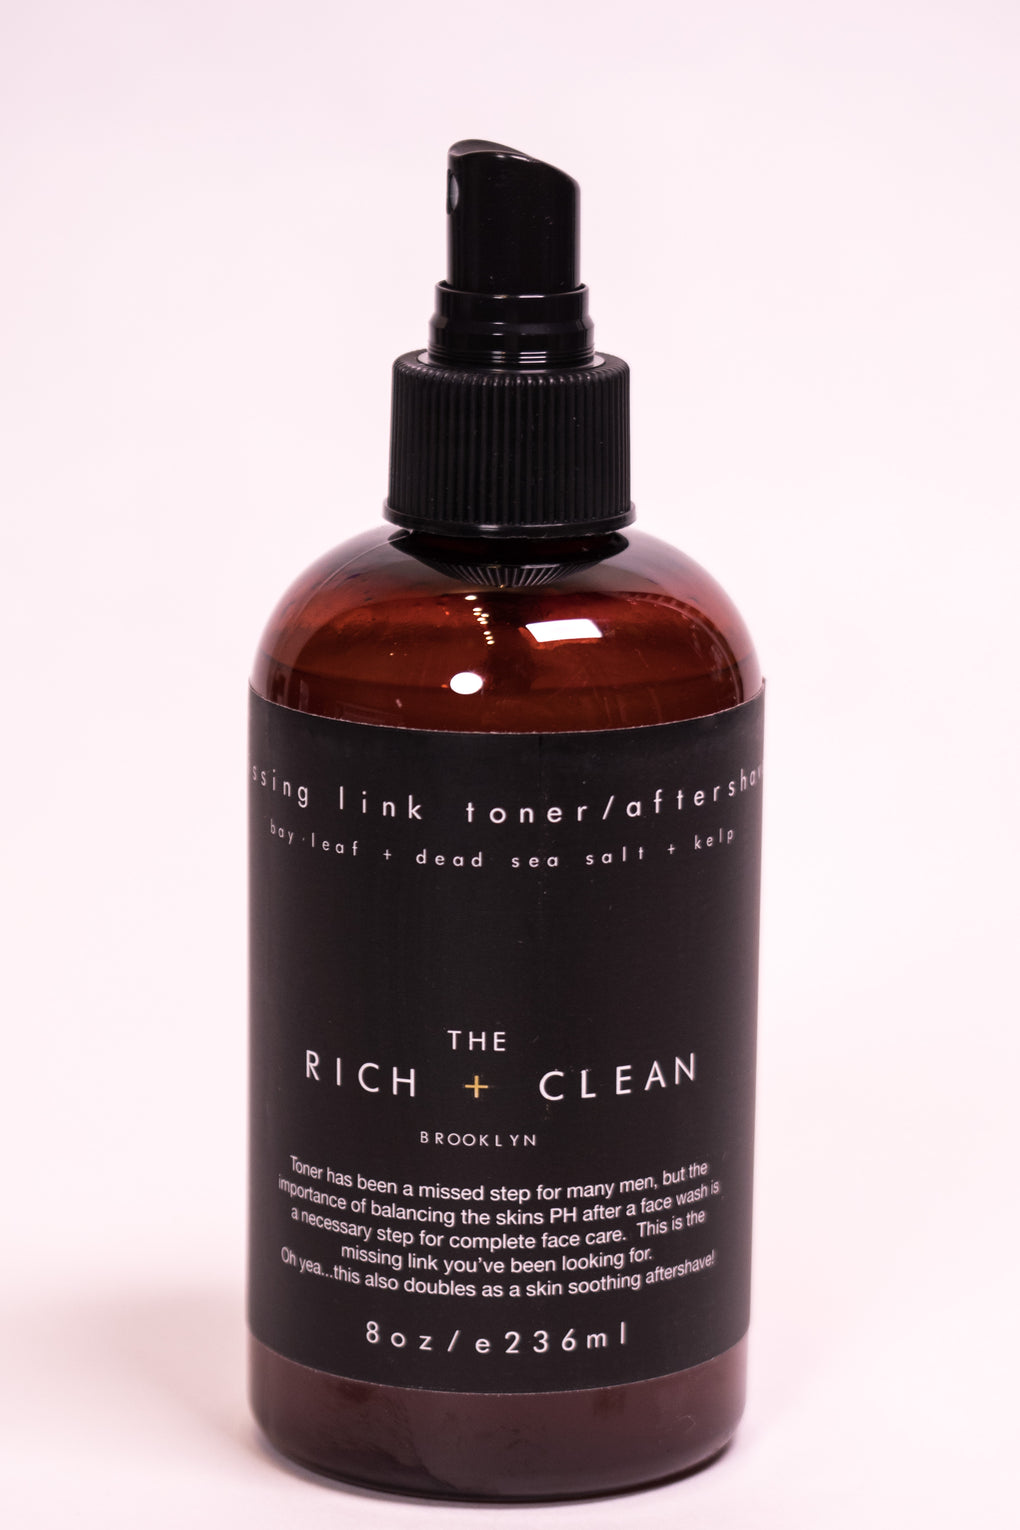 Rich & Clean Toner at Consigliere